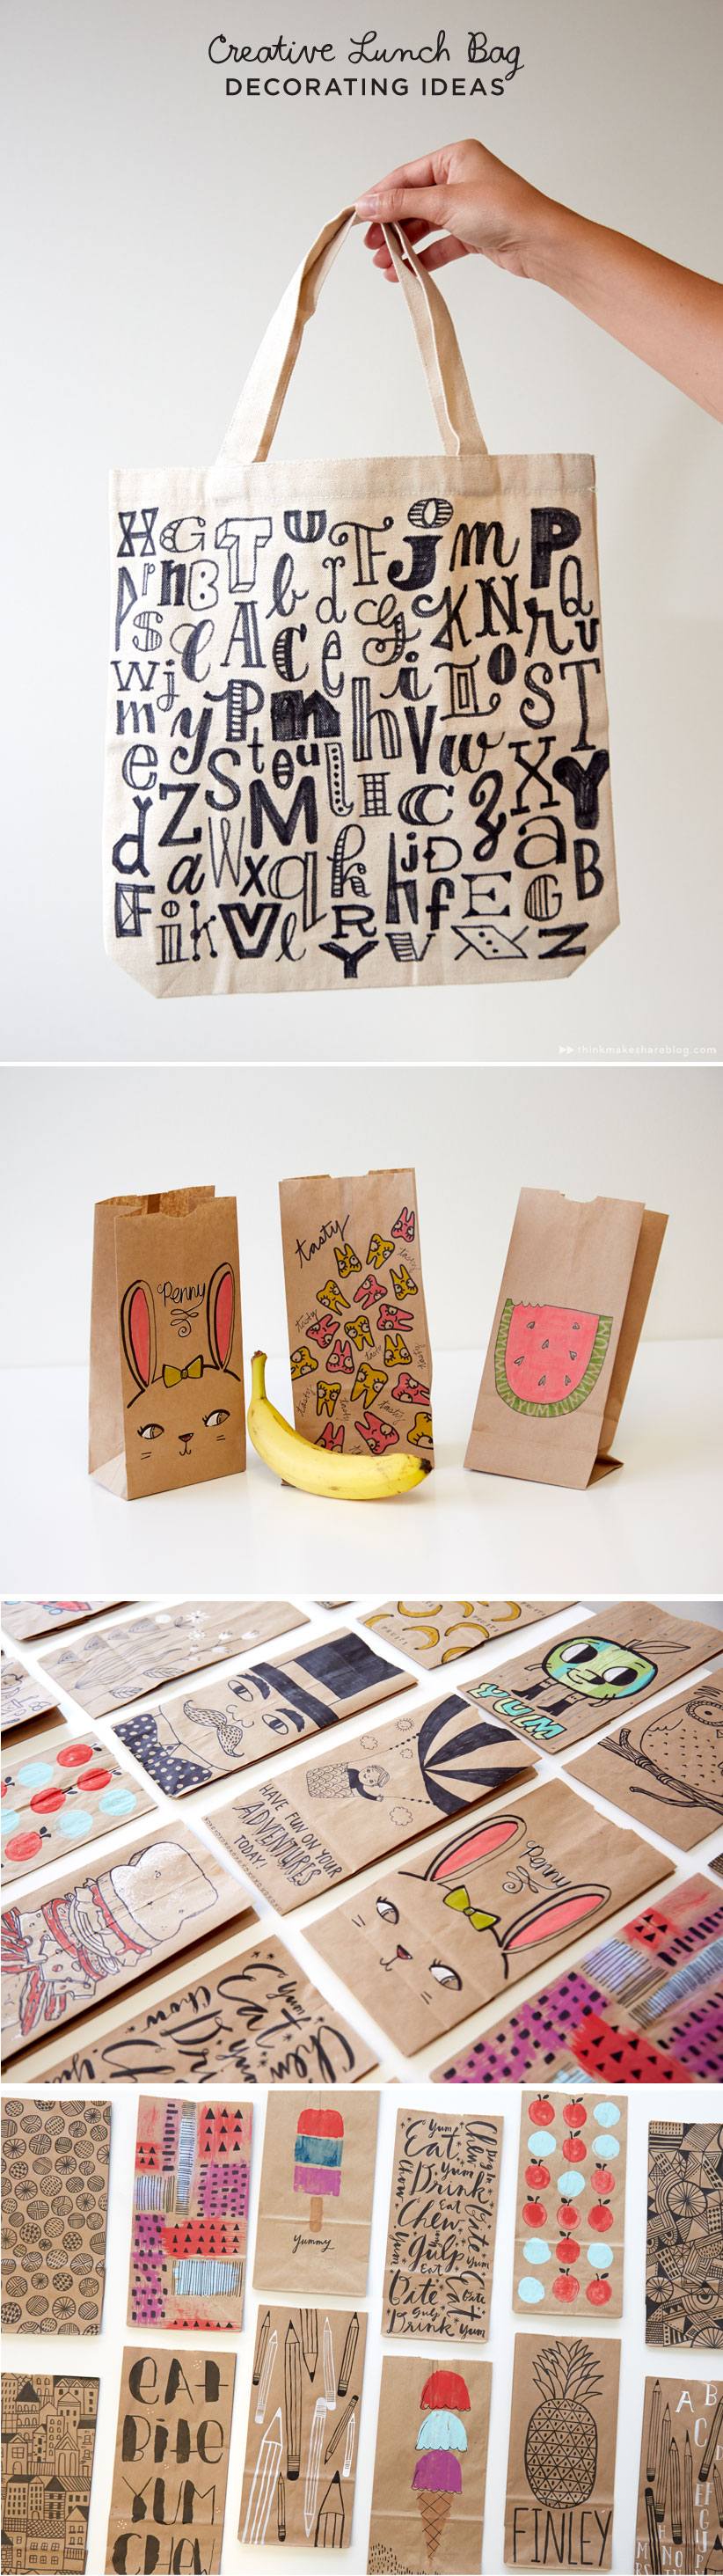 how to make lunch bags at home